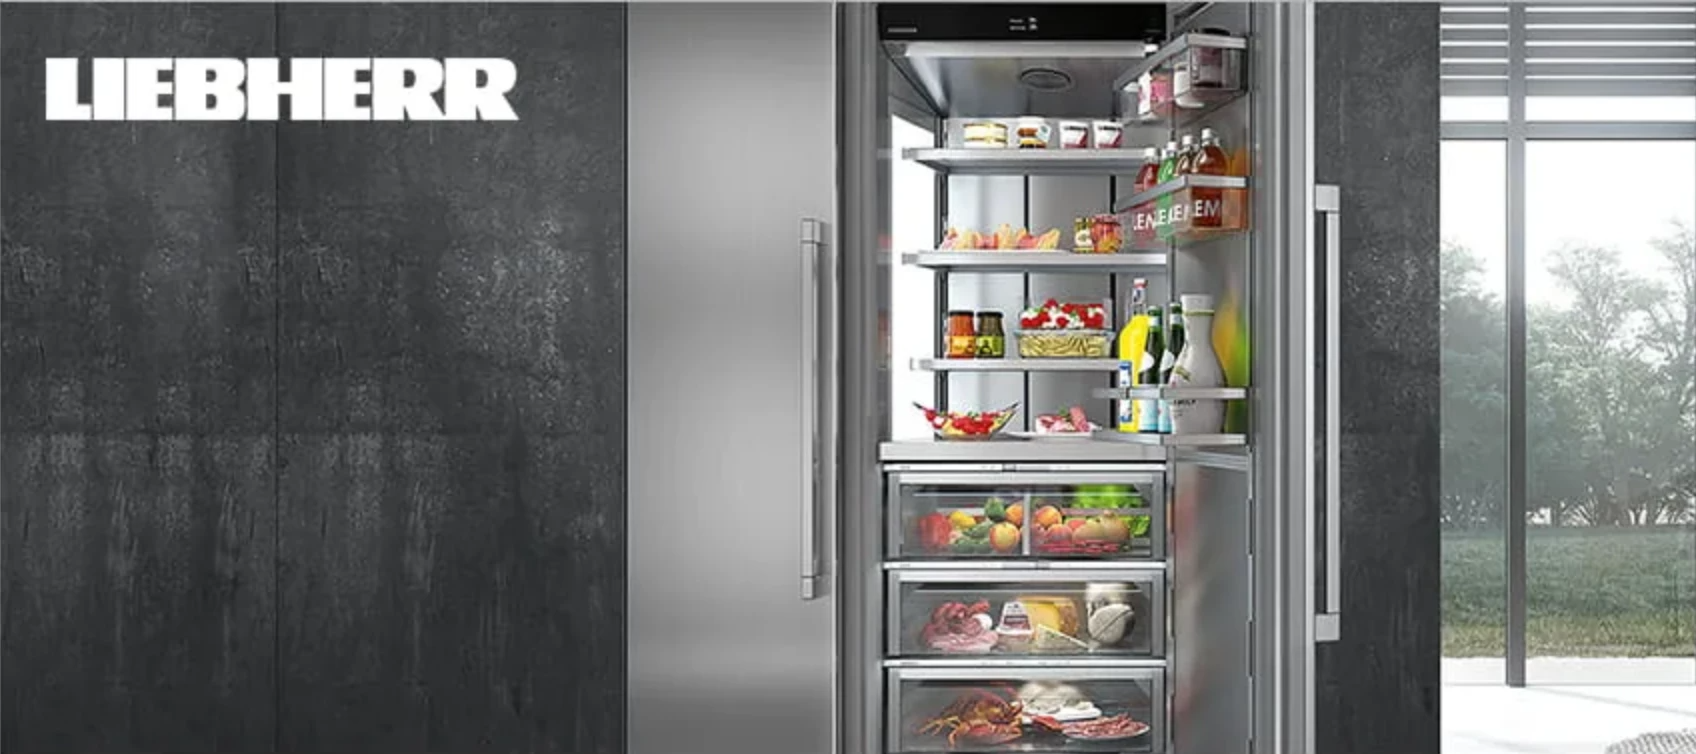 Liebherr - Cool Savings on Refrigeration - Save up to $600